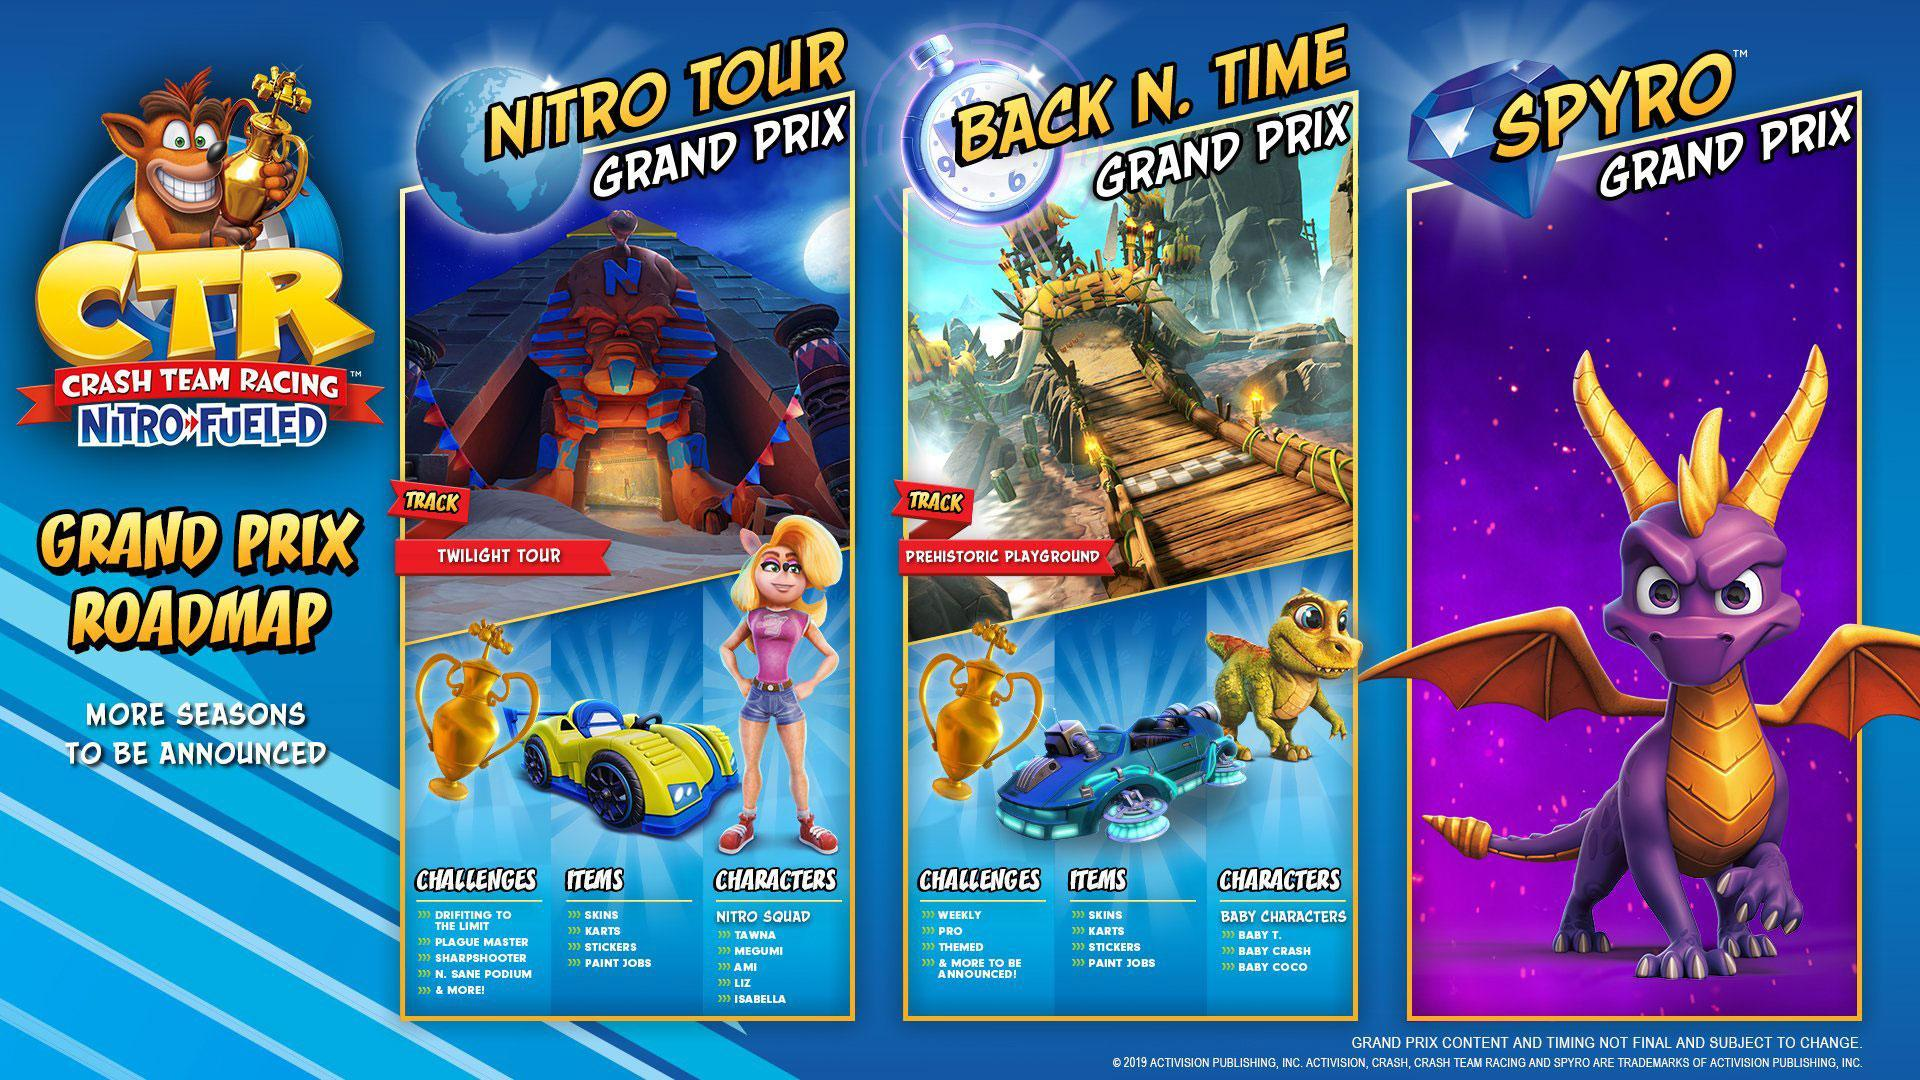 Grand Prix and Nitro Points Details for Crash Team Racing Nitro-Fueled